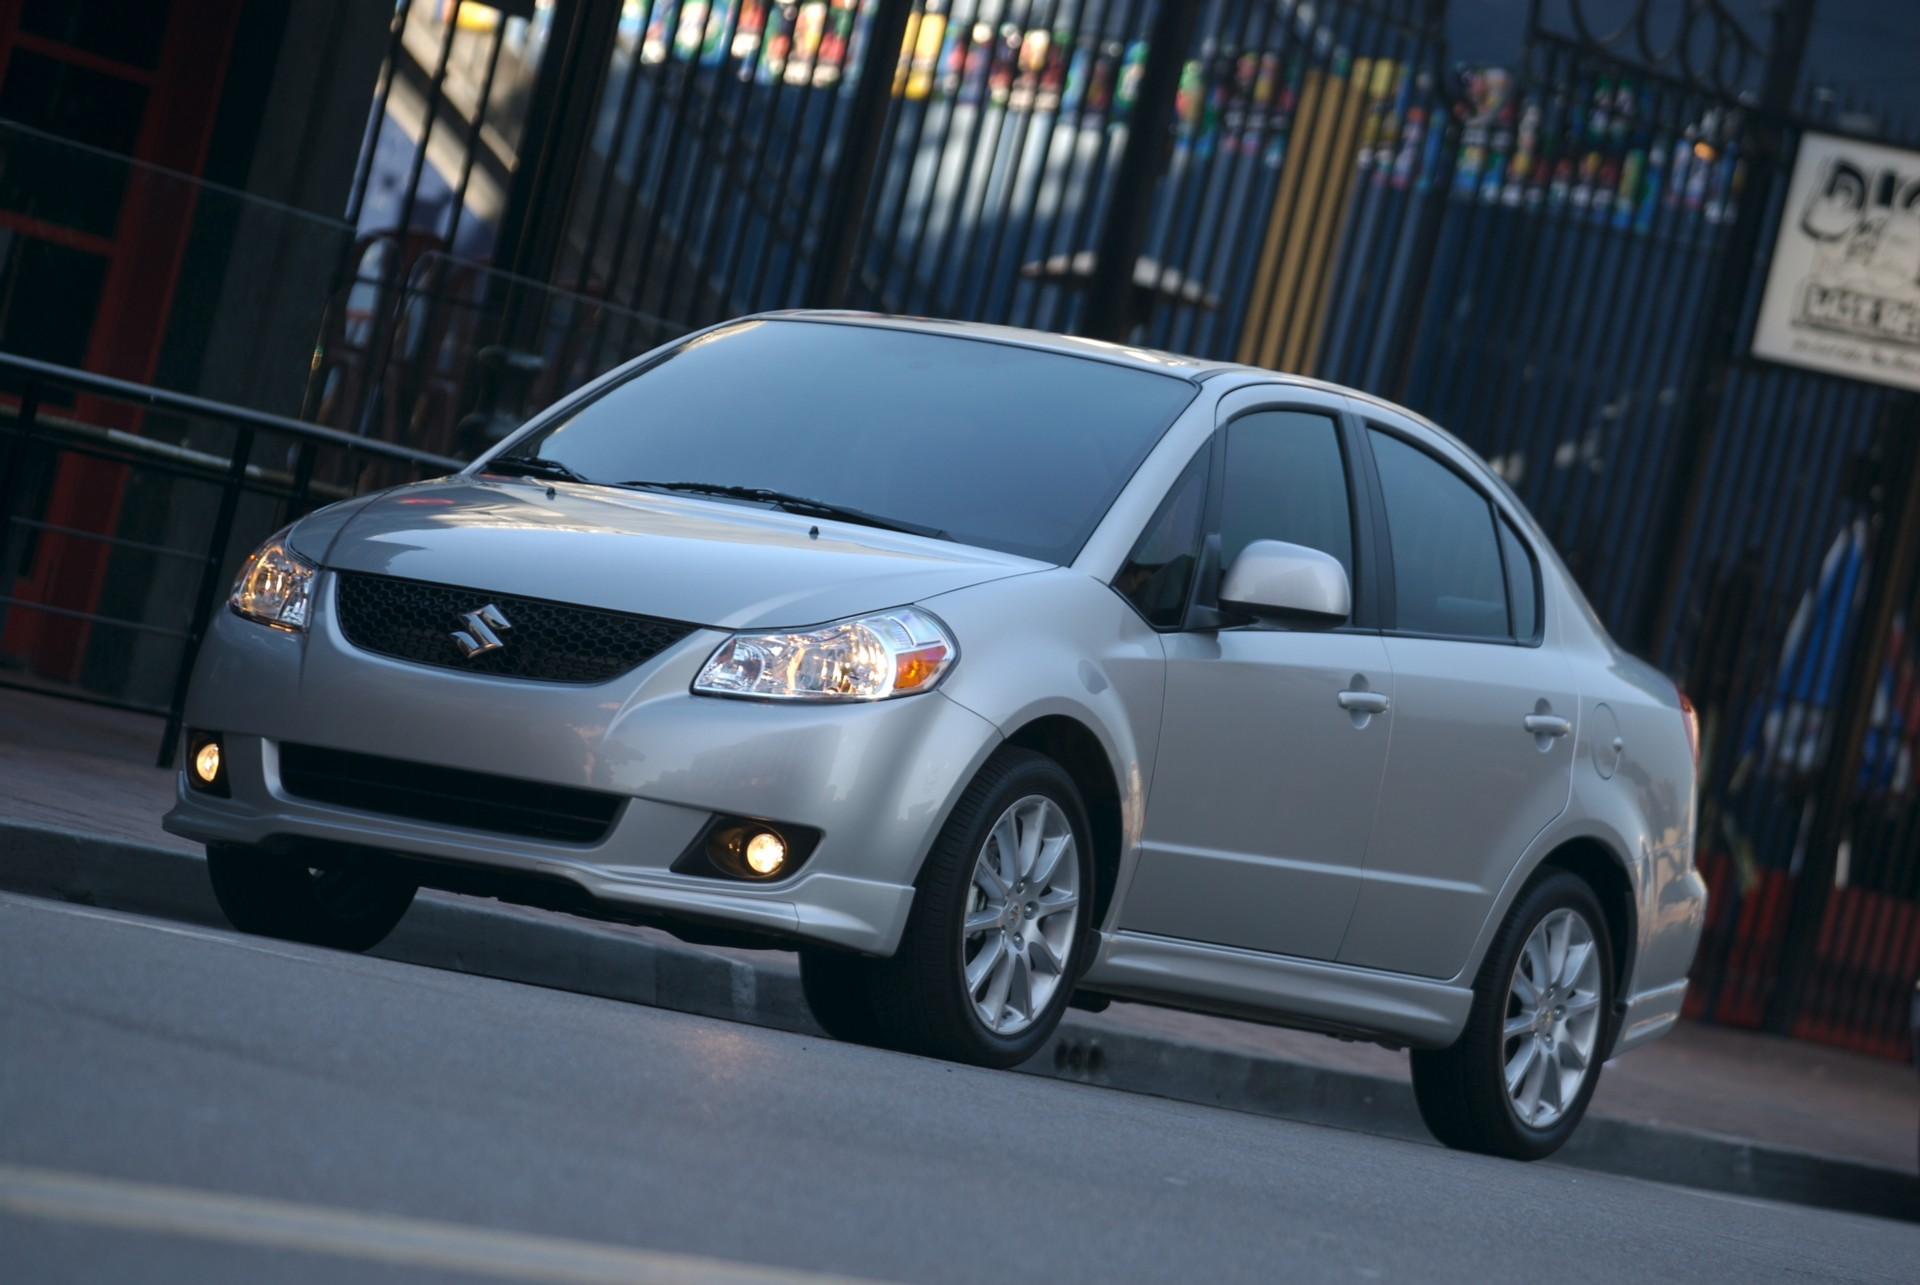 2008 Suzuki Sx4 News And Information Conceptcarz Com